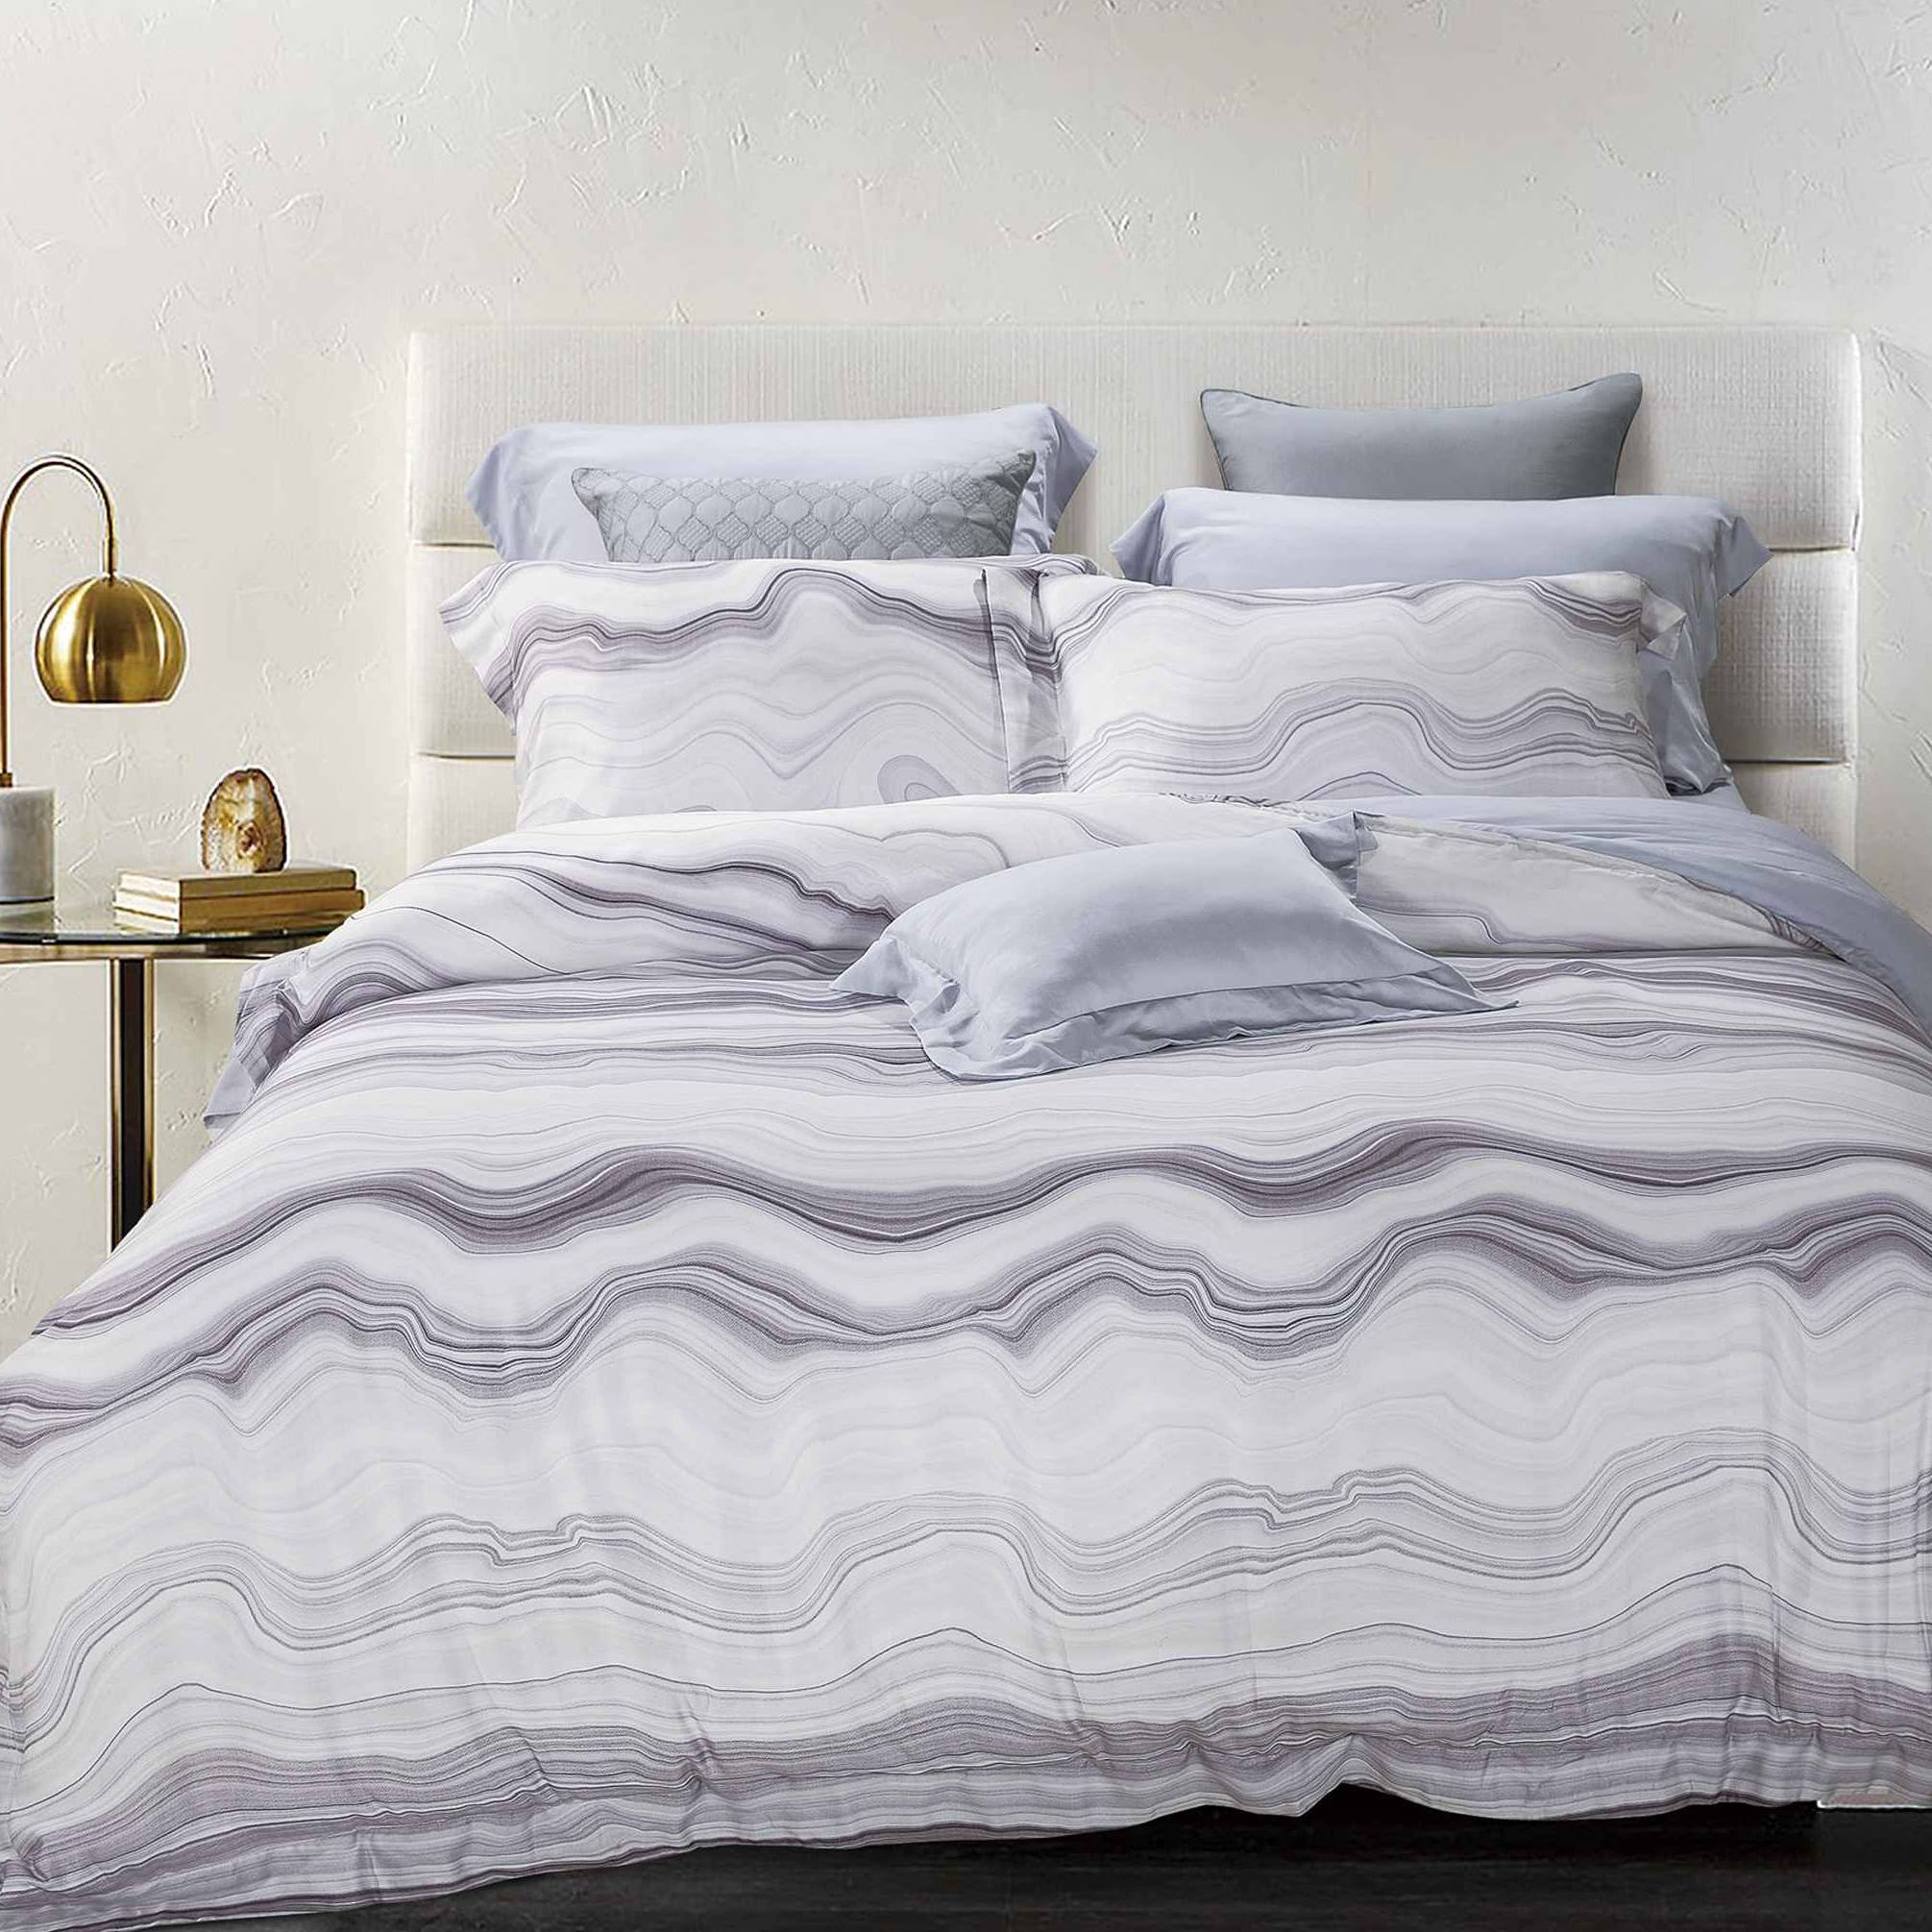 Daphne Lyocell Printed Soft Bed Linen 171287 100% Lyocell Printed image103